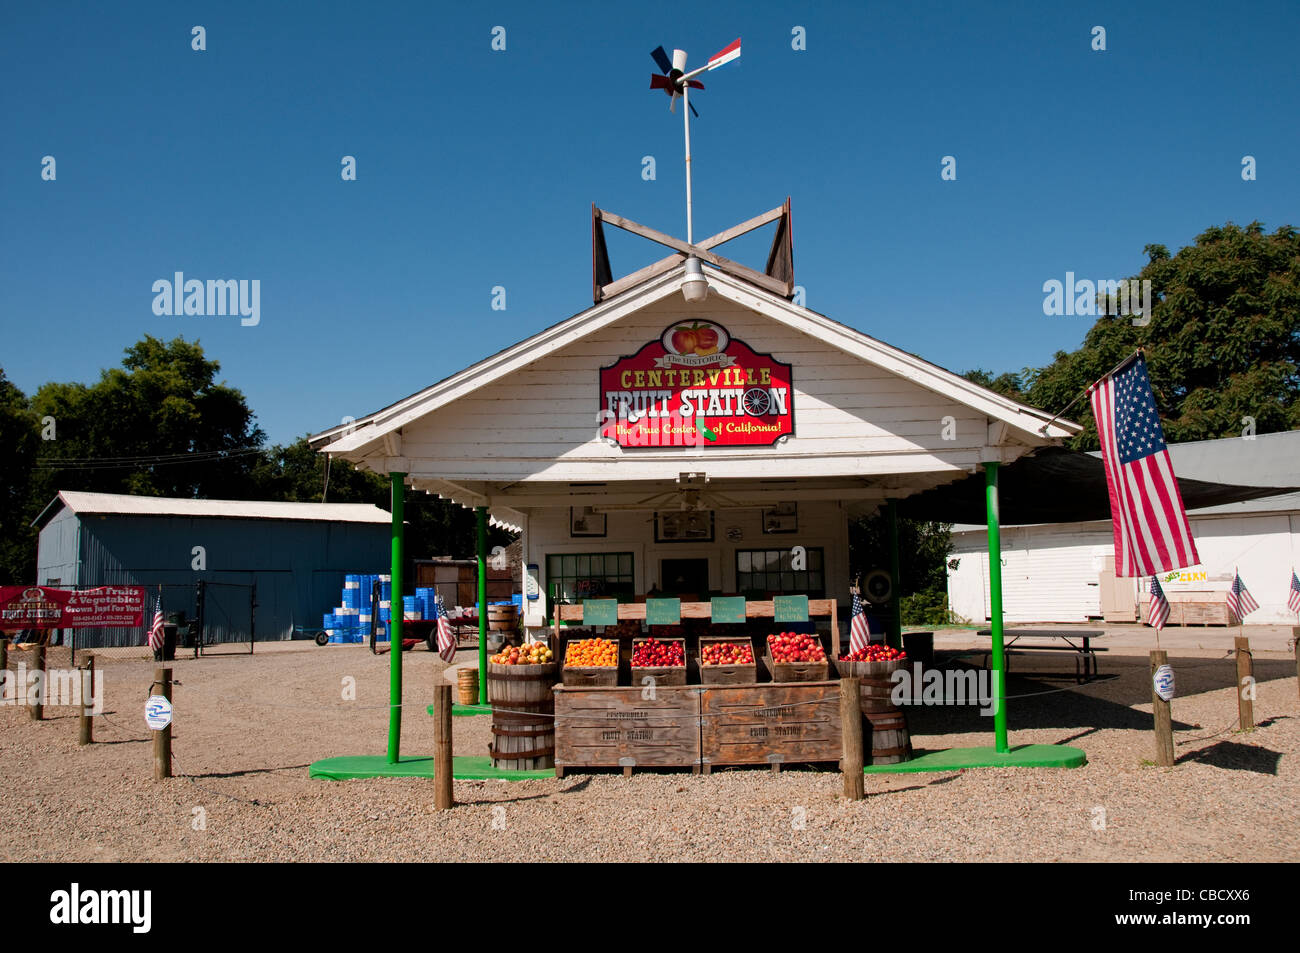 Centreville Fruit Stand Roadside produce stand Centreville between Fresno and Kings Canyon - Stock Image